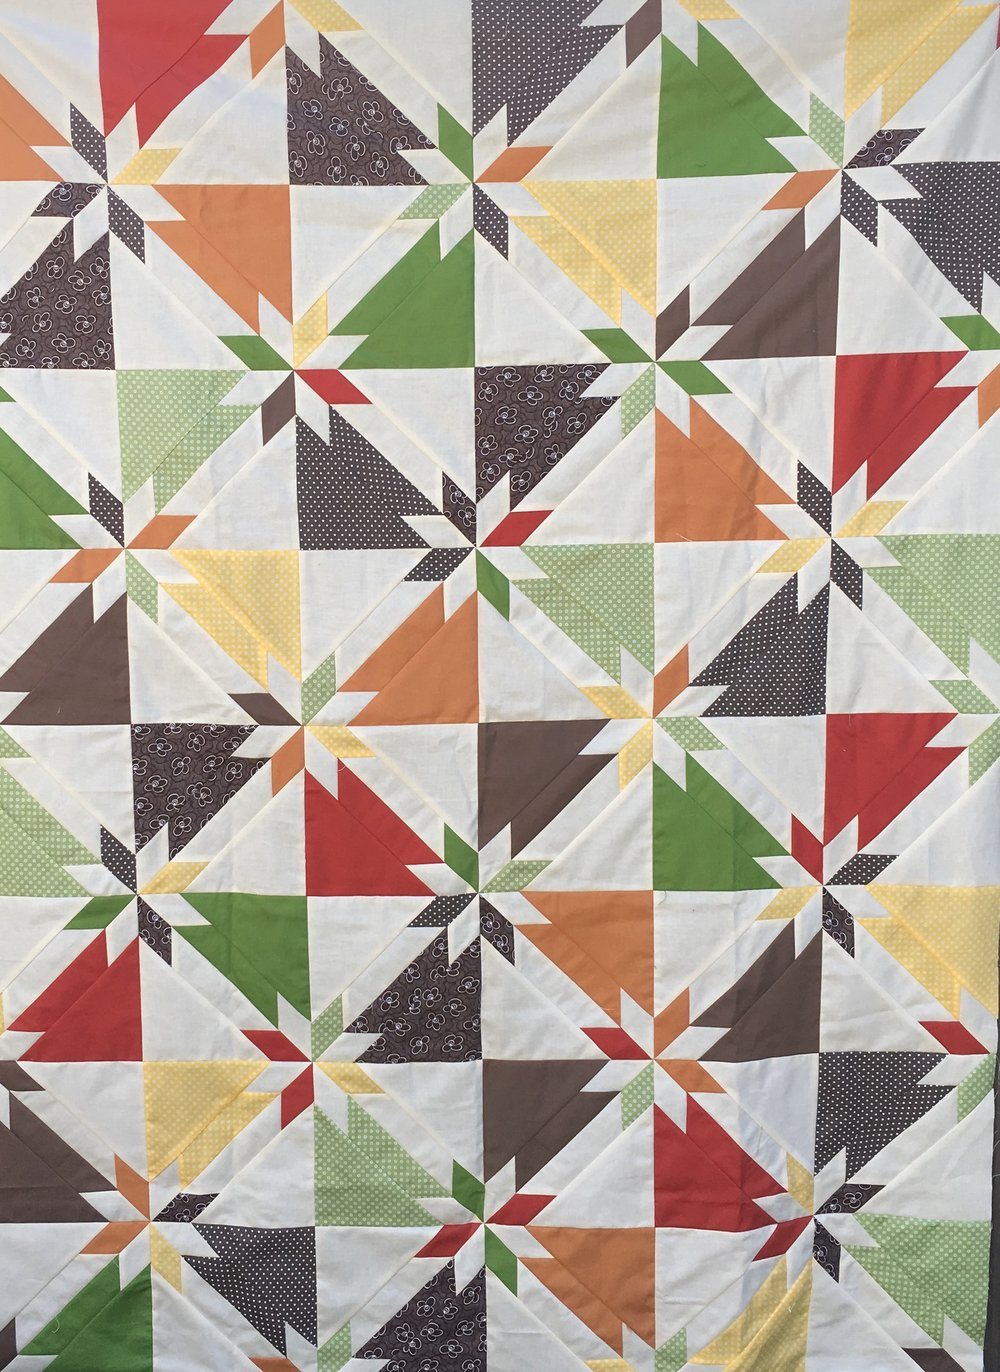 Hunter's Star quilt top in an assortment of fall colors